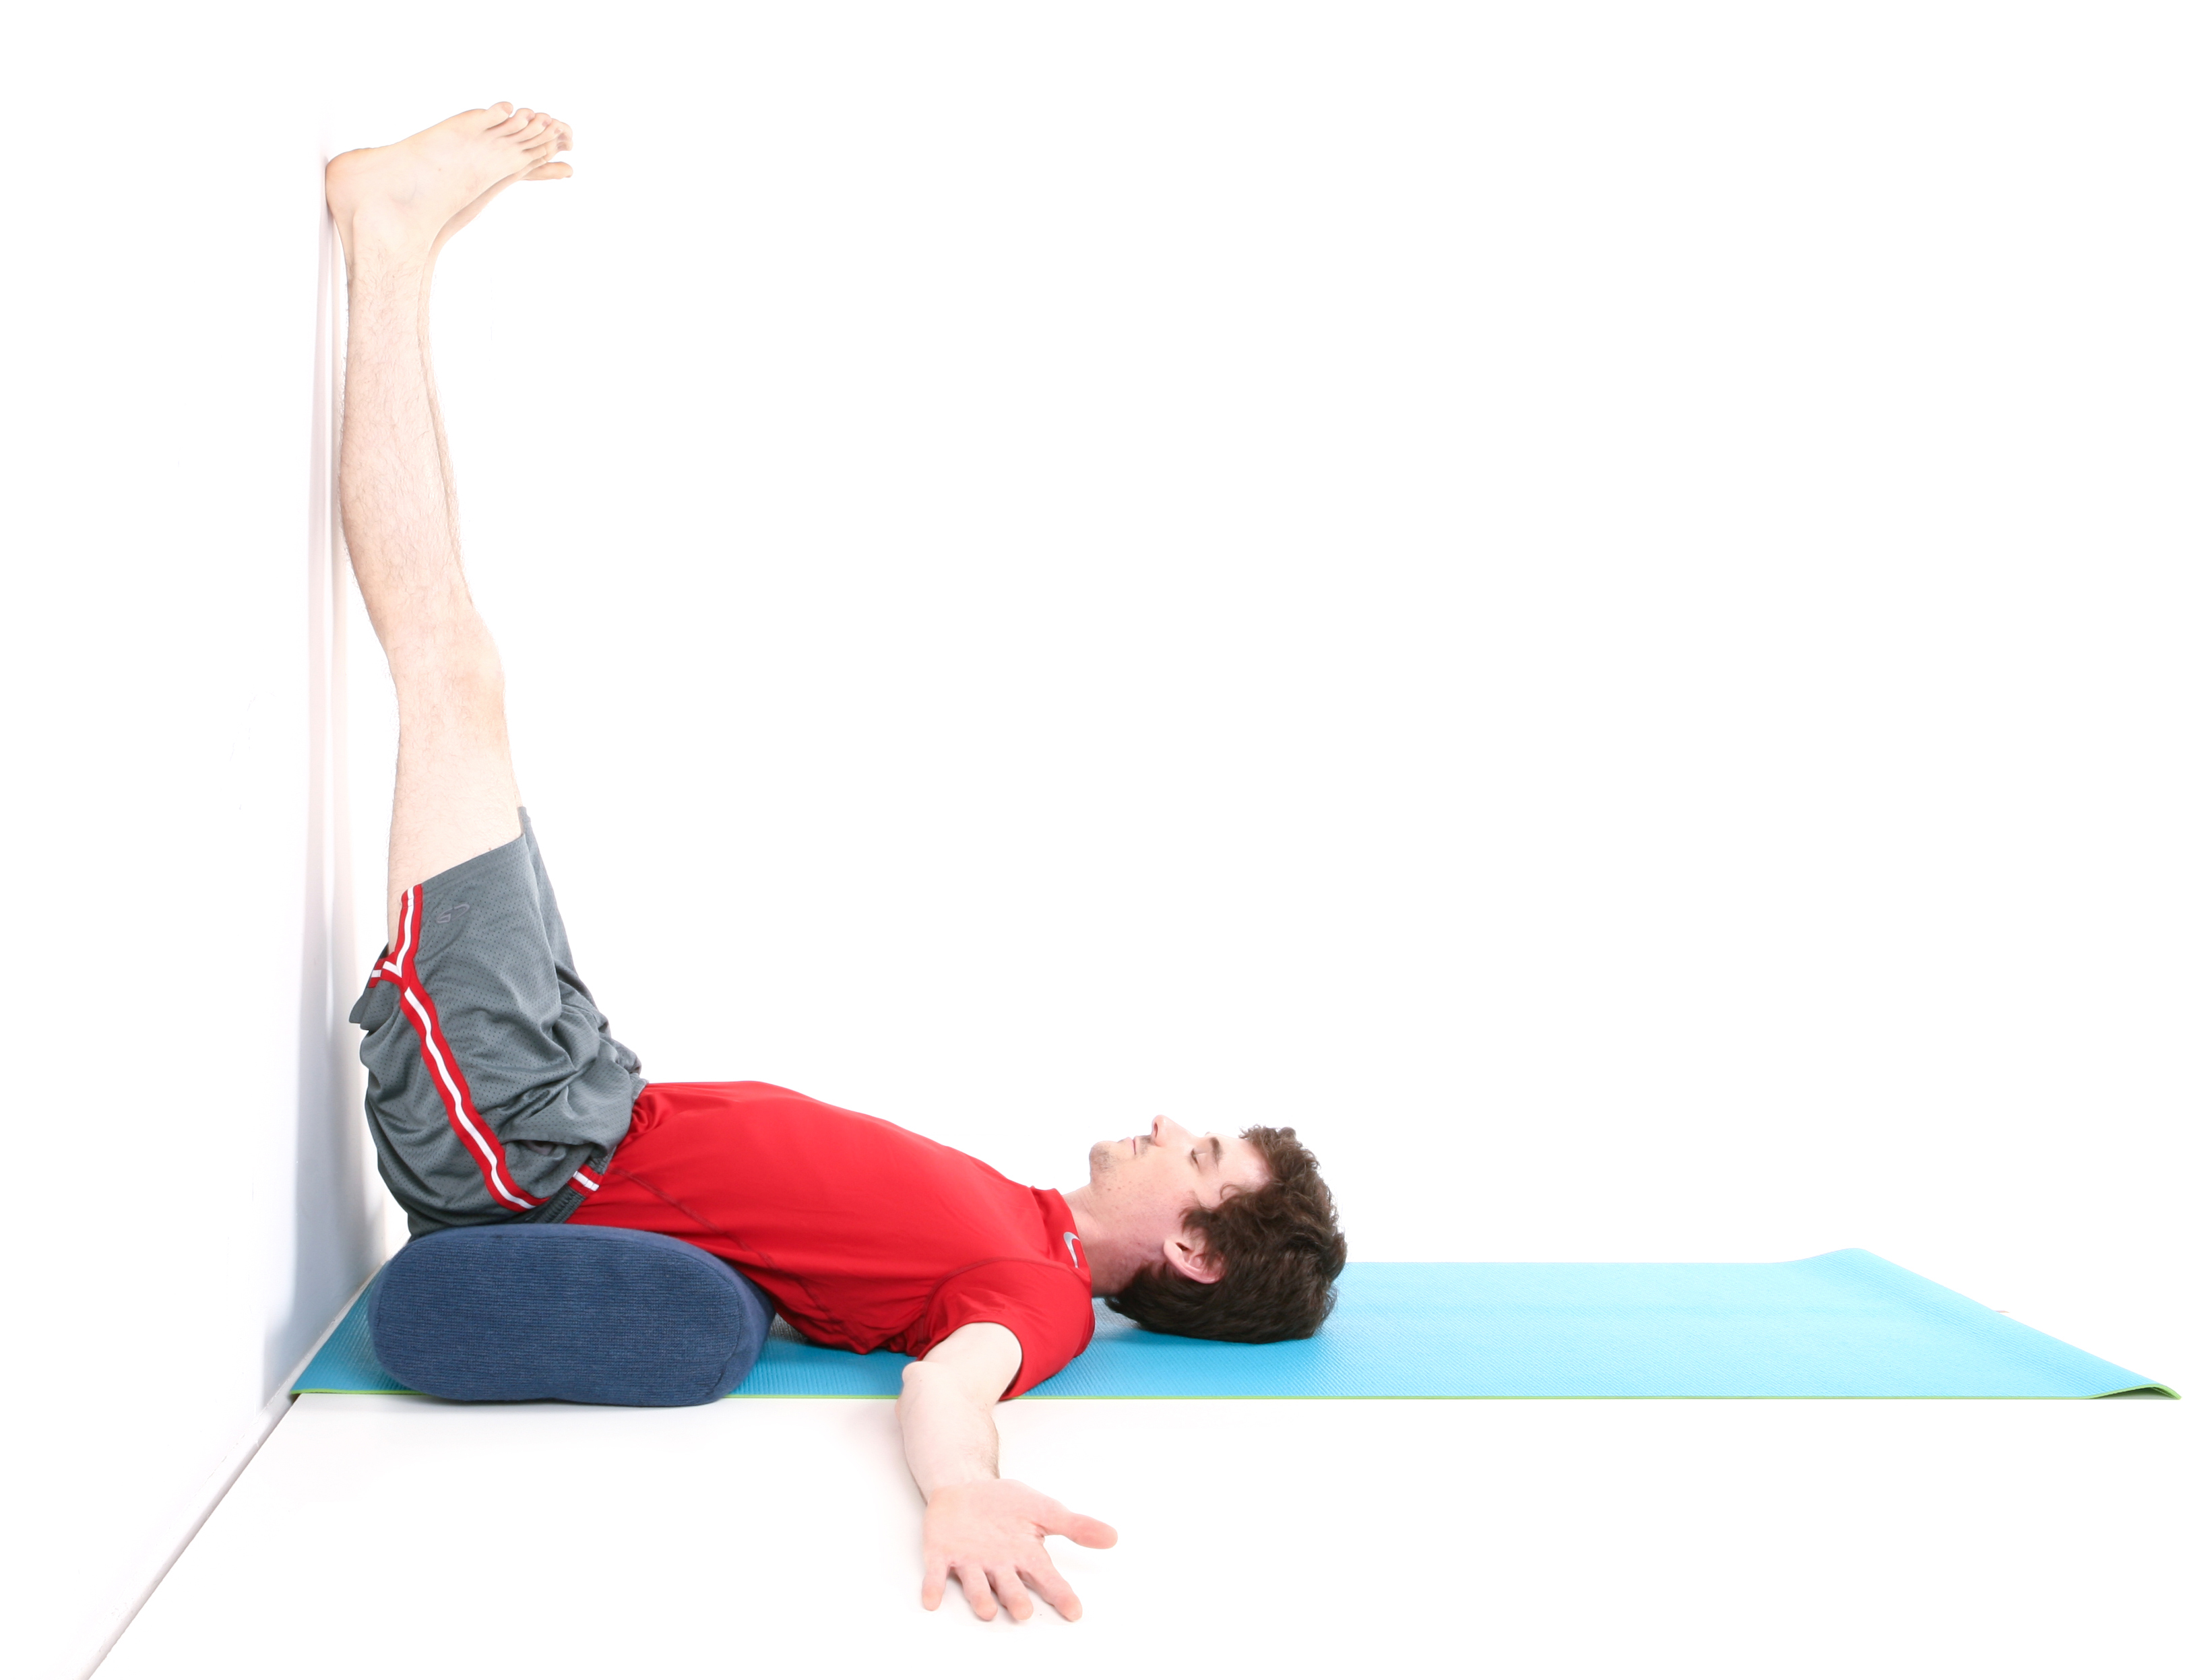 Legs Up The Wall Yoga Exercise